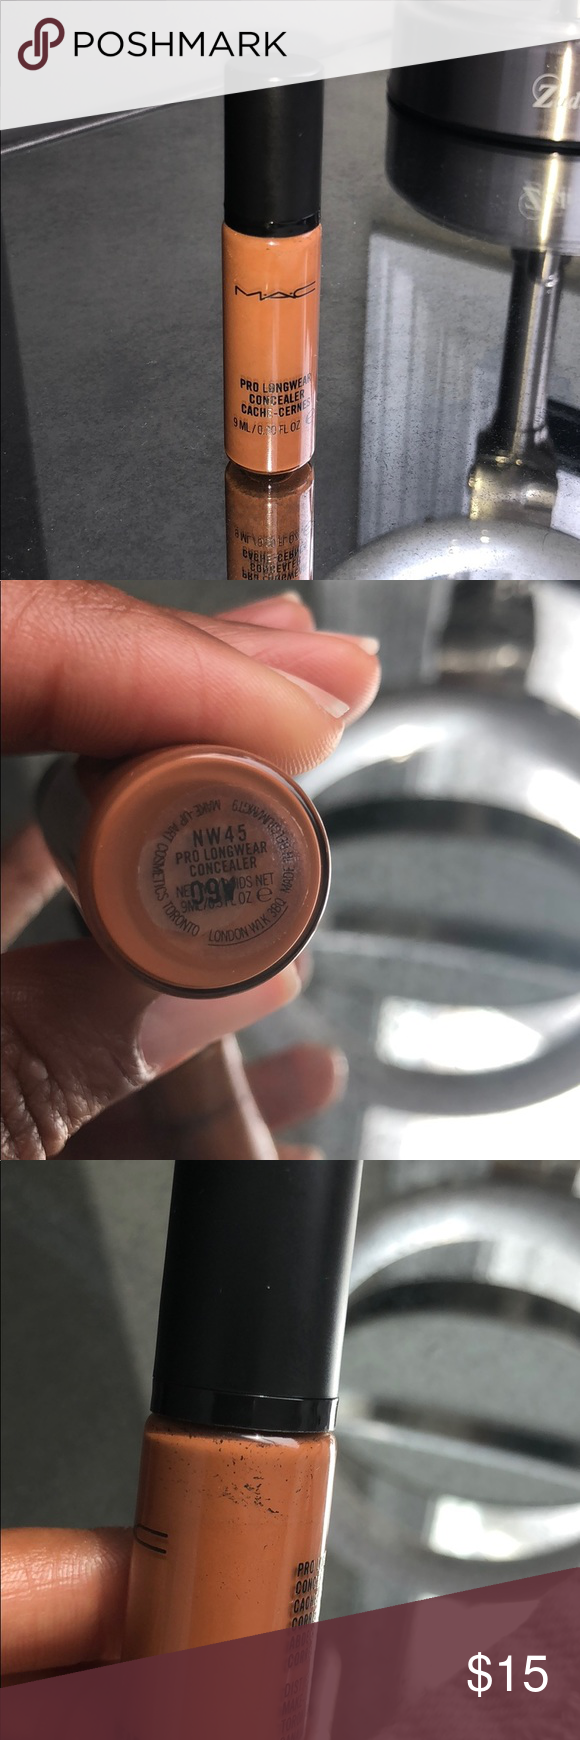 Used Once MAC Pro Longwear Concealer Shade NW45